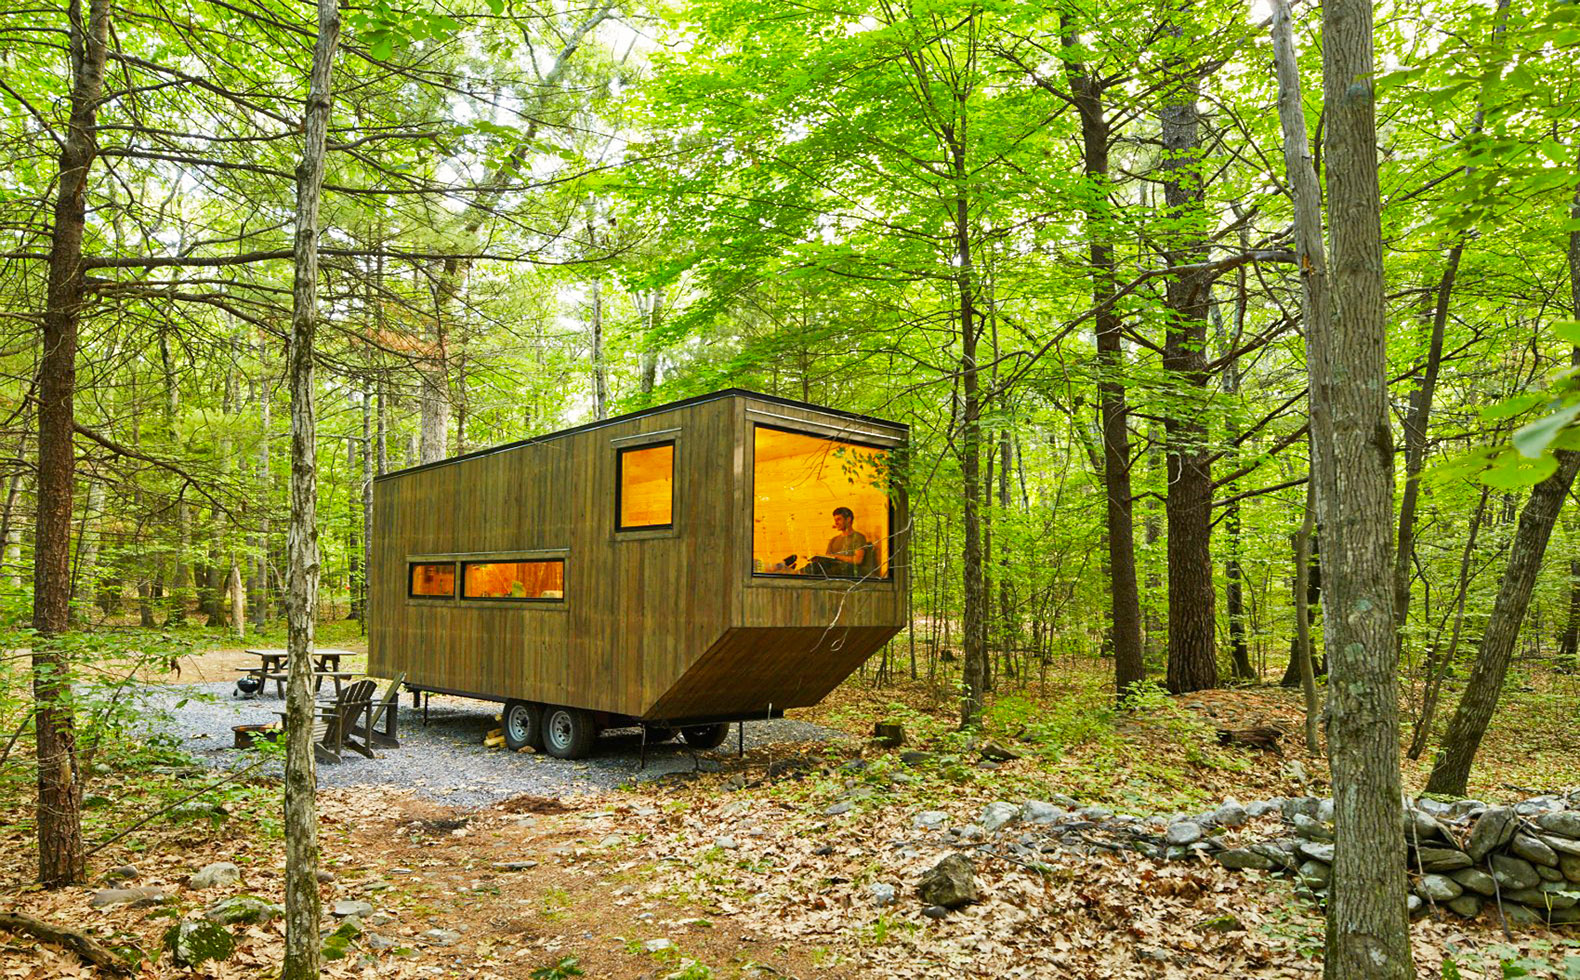 tiny house startup getaway to launch off grid tiny homes near nyc this weekend inhabitat. Black Bedroom Furniture Sets. Home Design Ideas